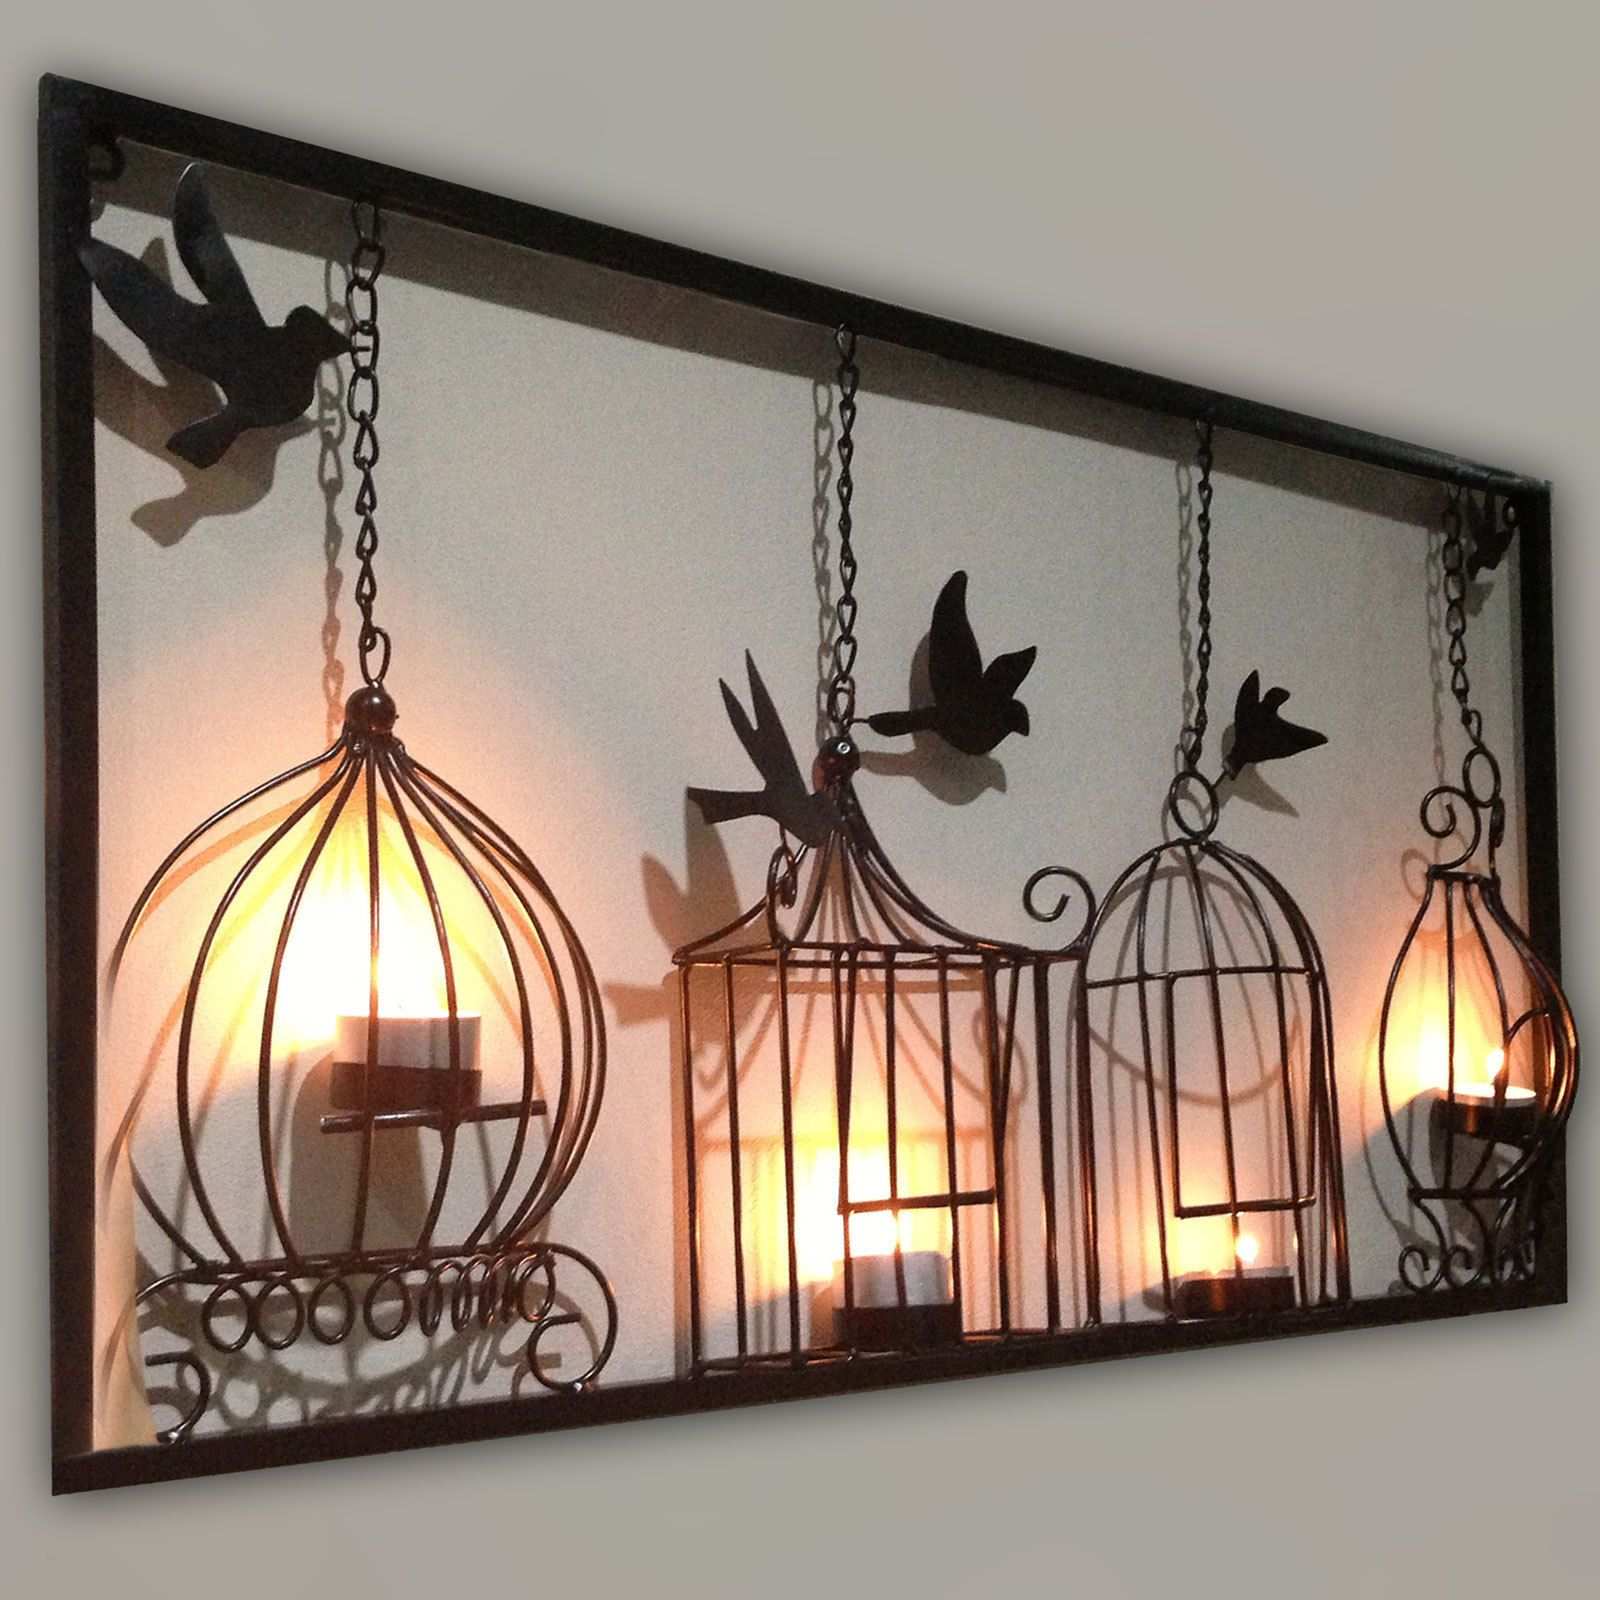 Black Wrought Iron Wall Hangings Amusing Birdcage Tea Light Wall Art Metal Wall Hanging Candle Holder Black Inspiration Design